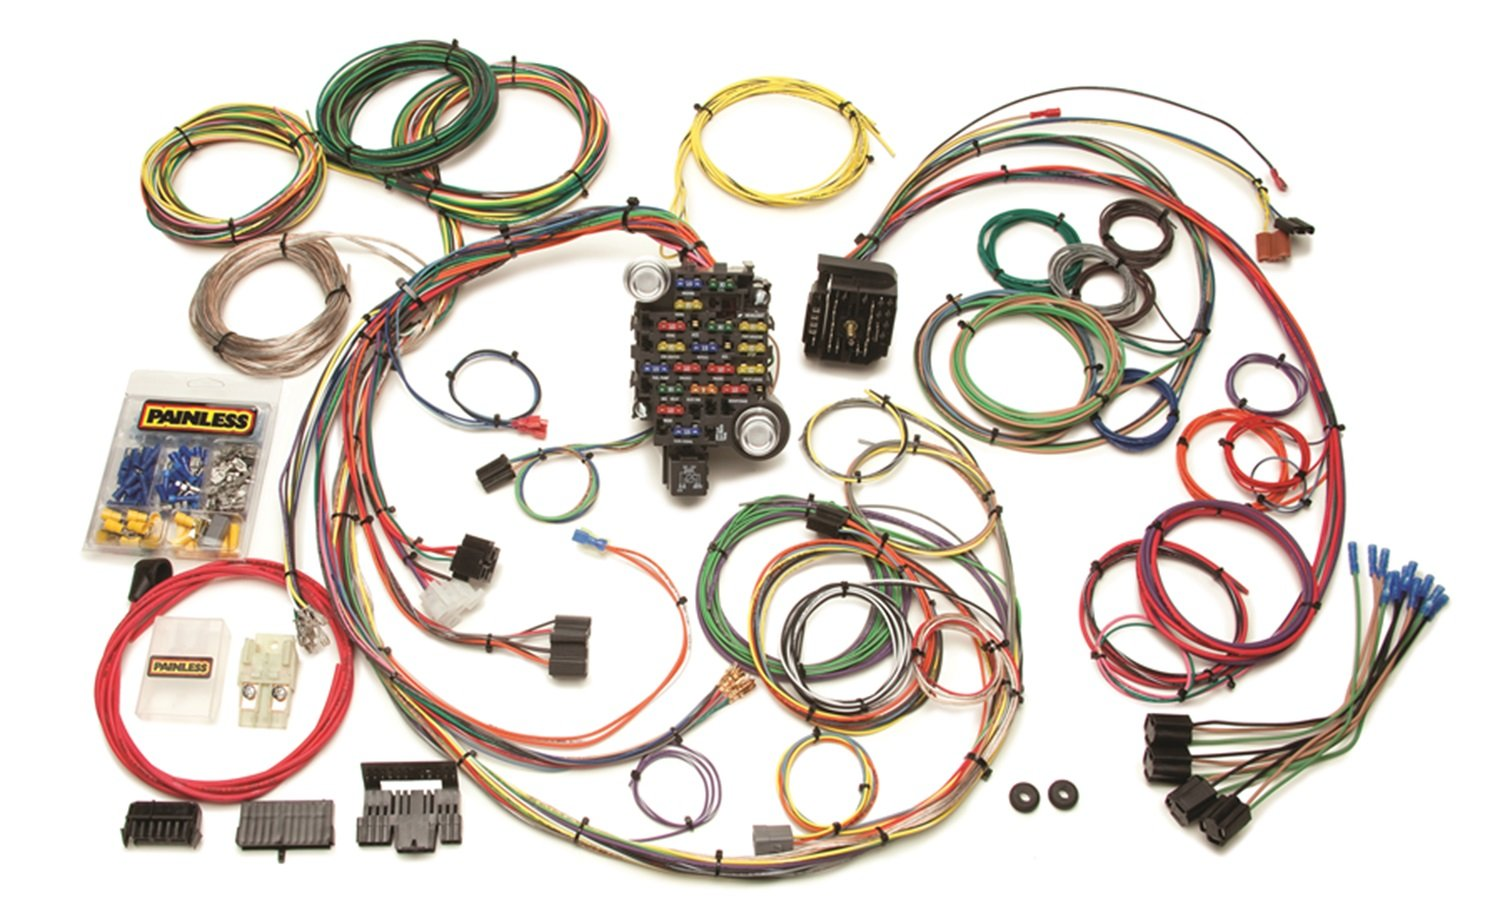 71RvMxx3qDL._SL1500_ amazon com painless 20102 custom wiring harness automotive automotive wiring harness at mifinder.co